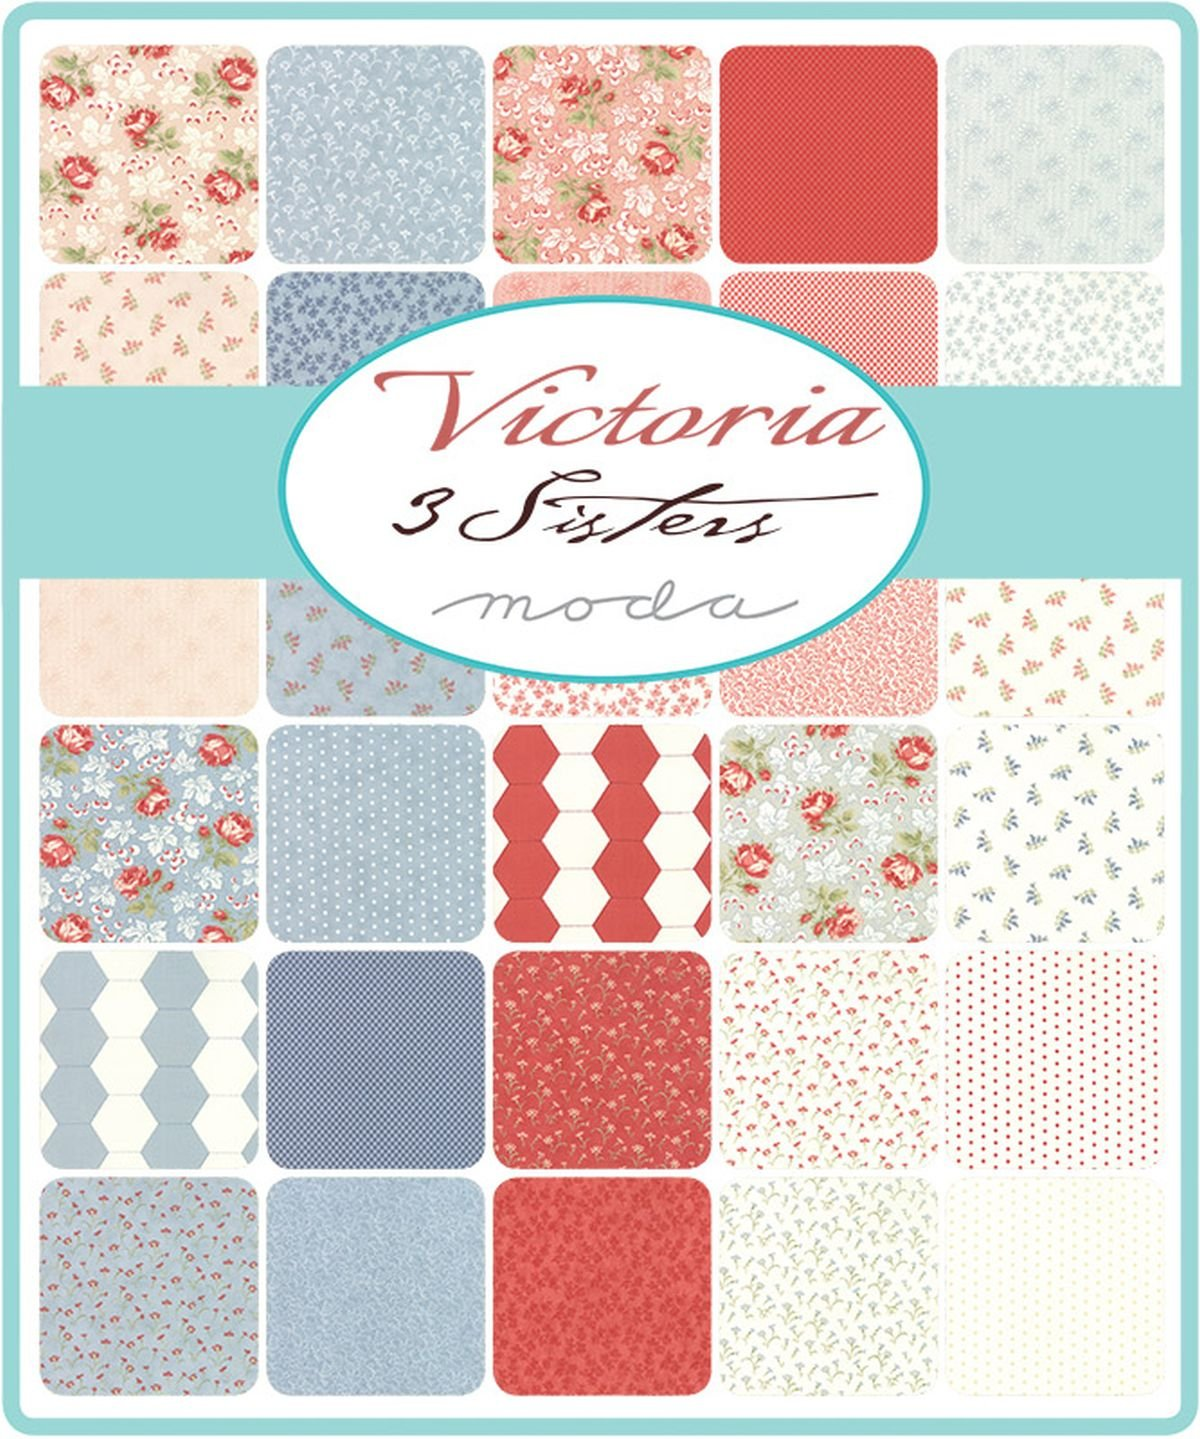 Victoria Mini Charm Pack by 3 Sisters; 42-2.5 Precut Fabric Quilt Squares